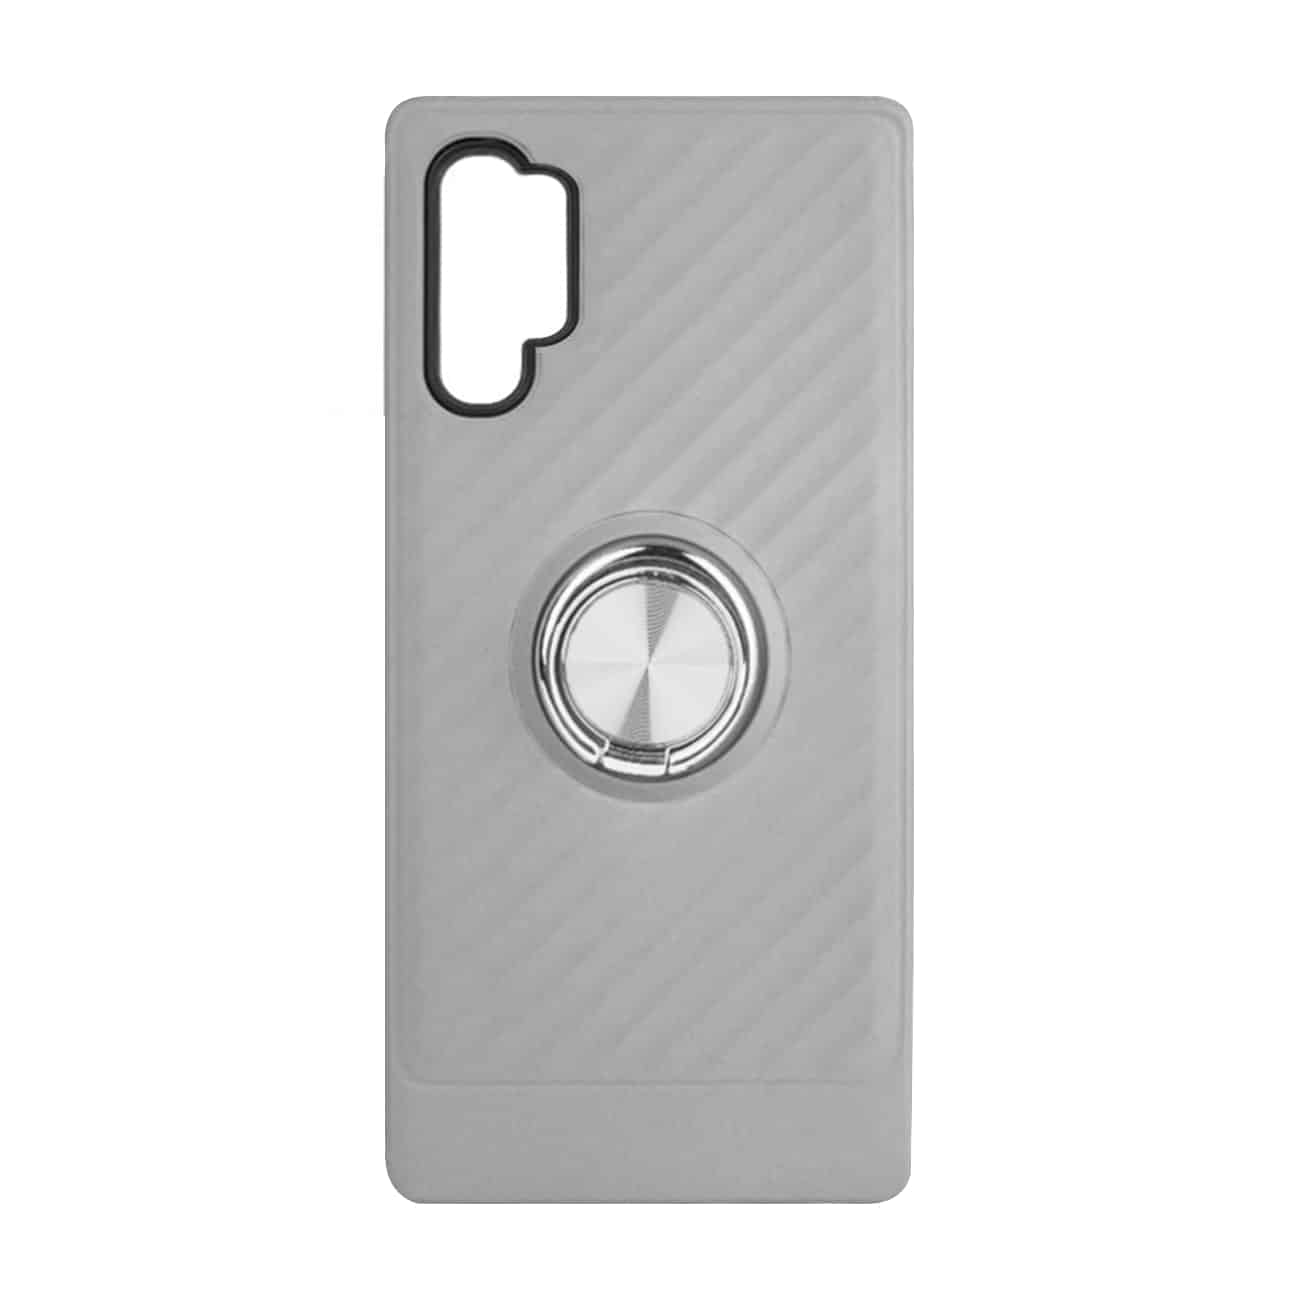 SAMSUNG GALAXY NOTE 10 PLUS Case with Ring Holder InSilver